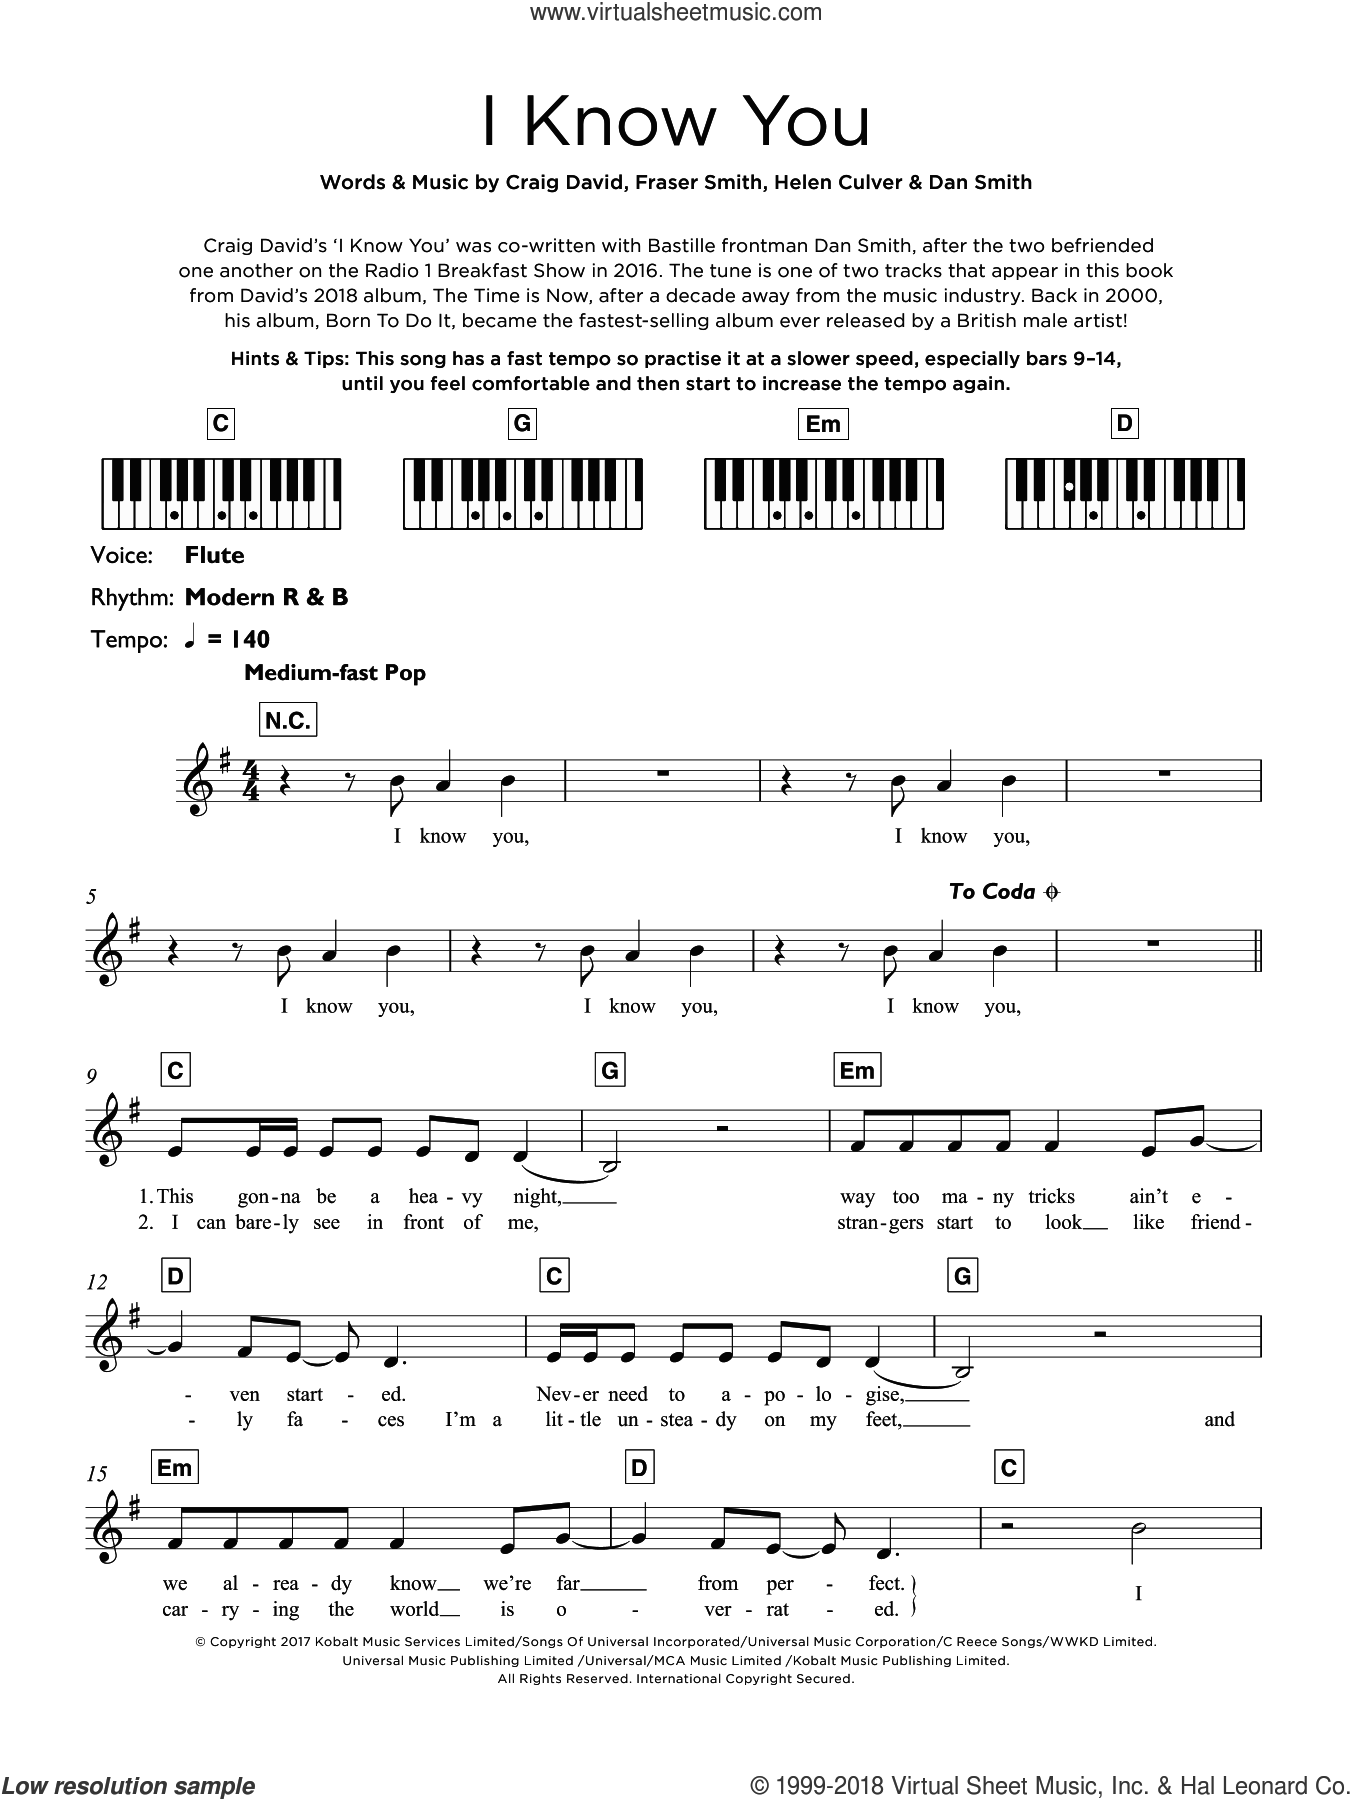 I Know You (featuring Bastille) sheet music for piano solo (keyboard) by Craig David, Bastille, Dan Smith, Fraser T. Smith and Helen Culver, intermediate piano (keyboard)